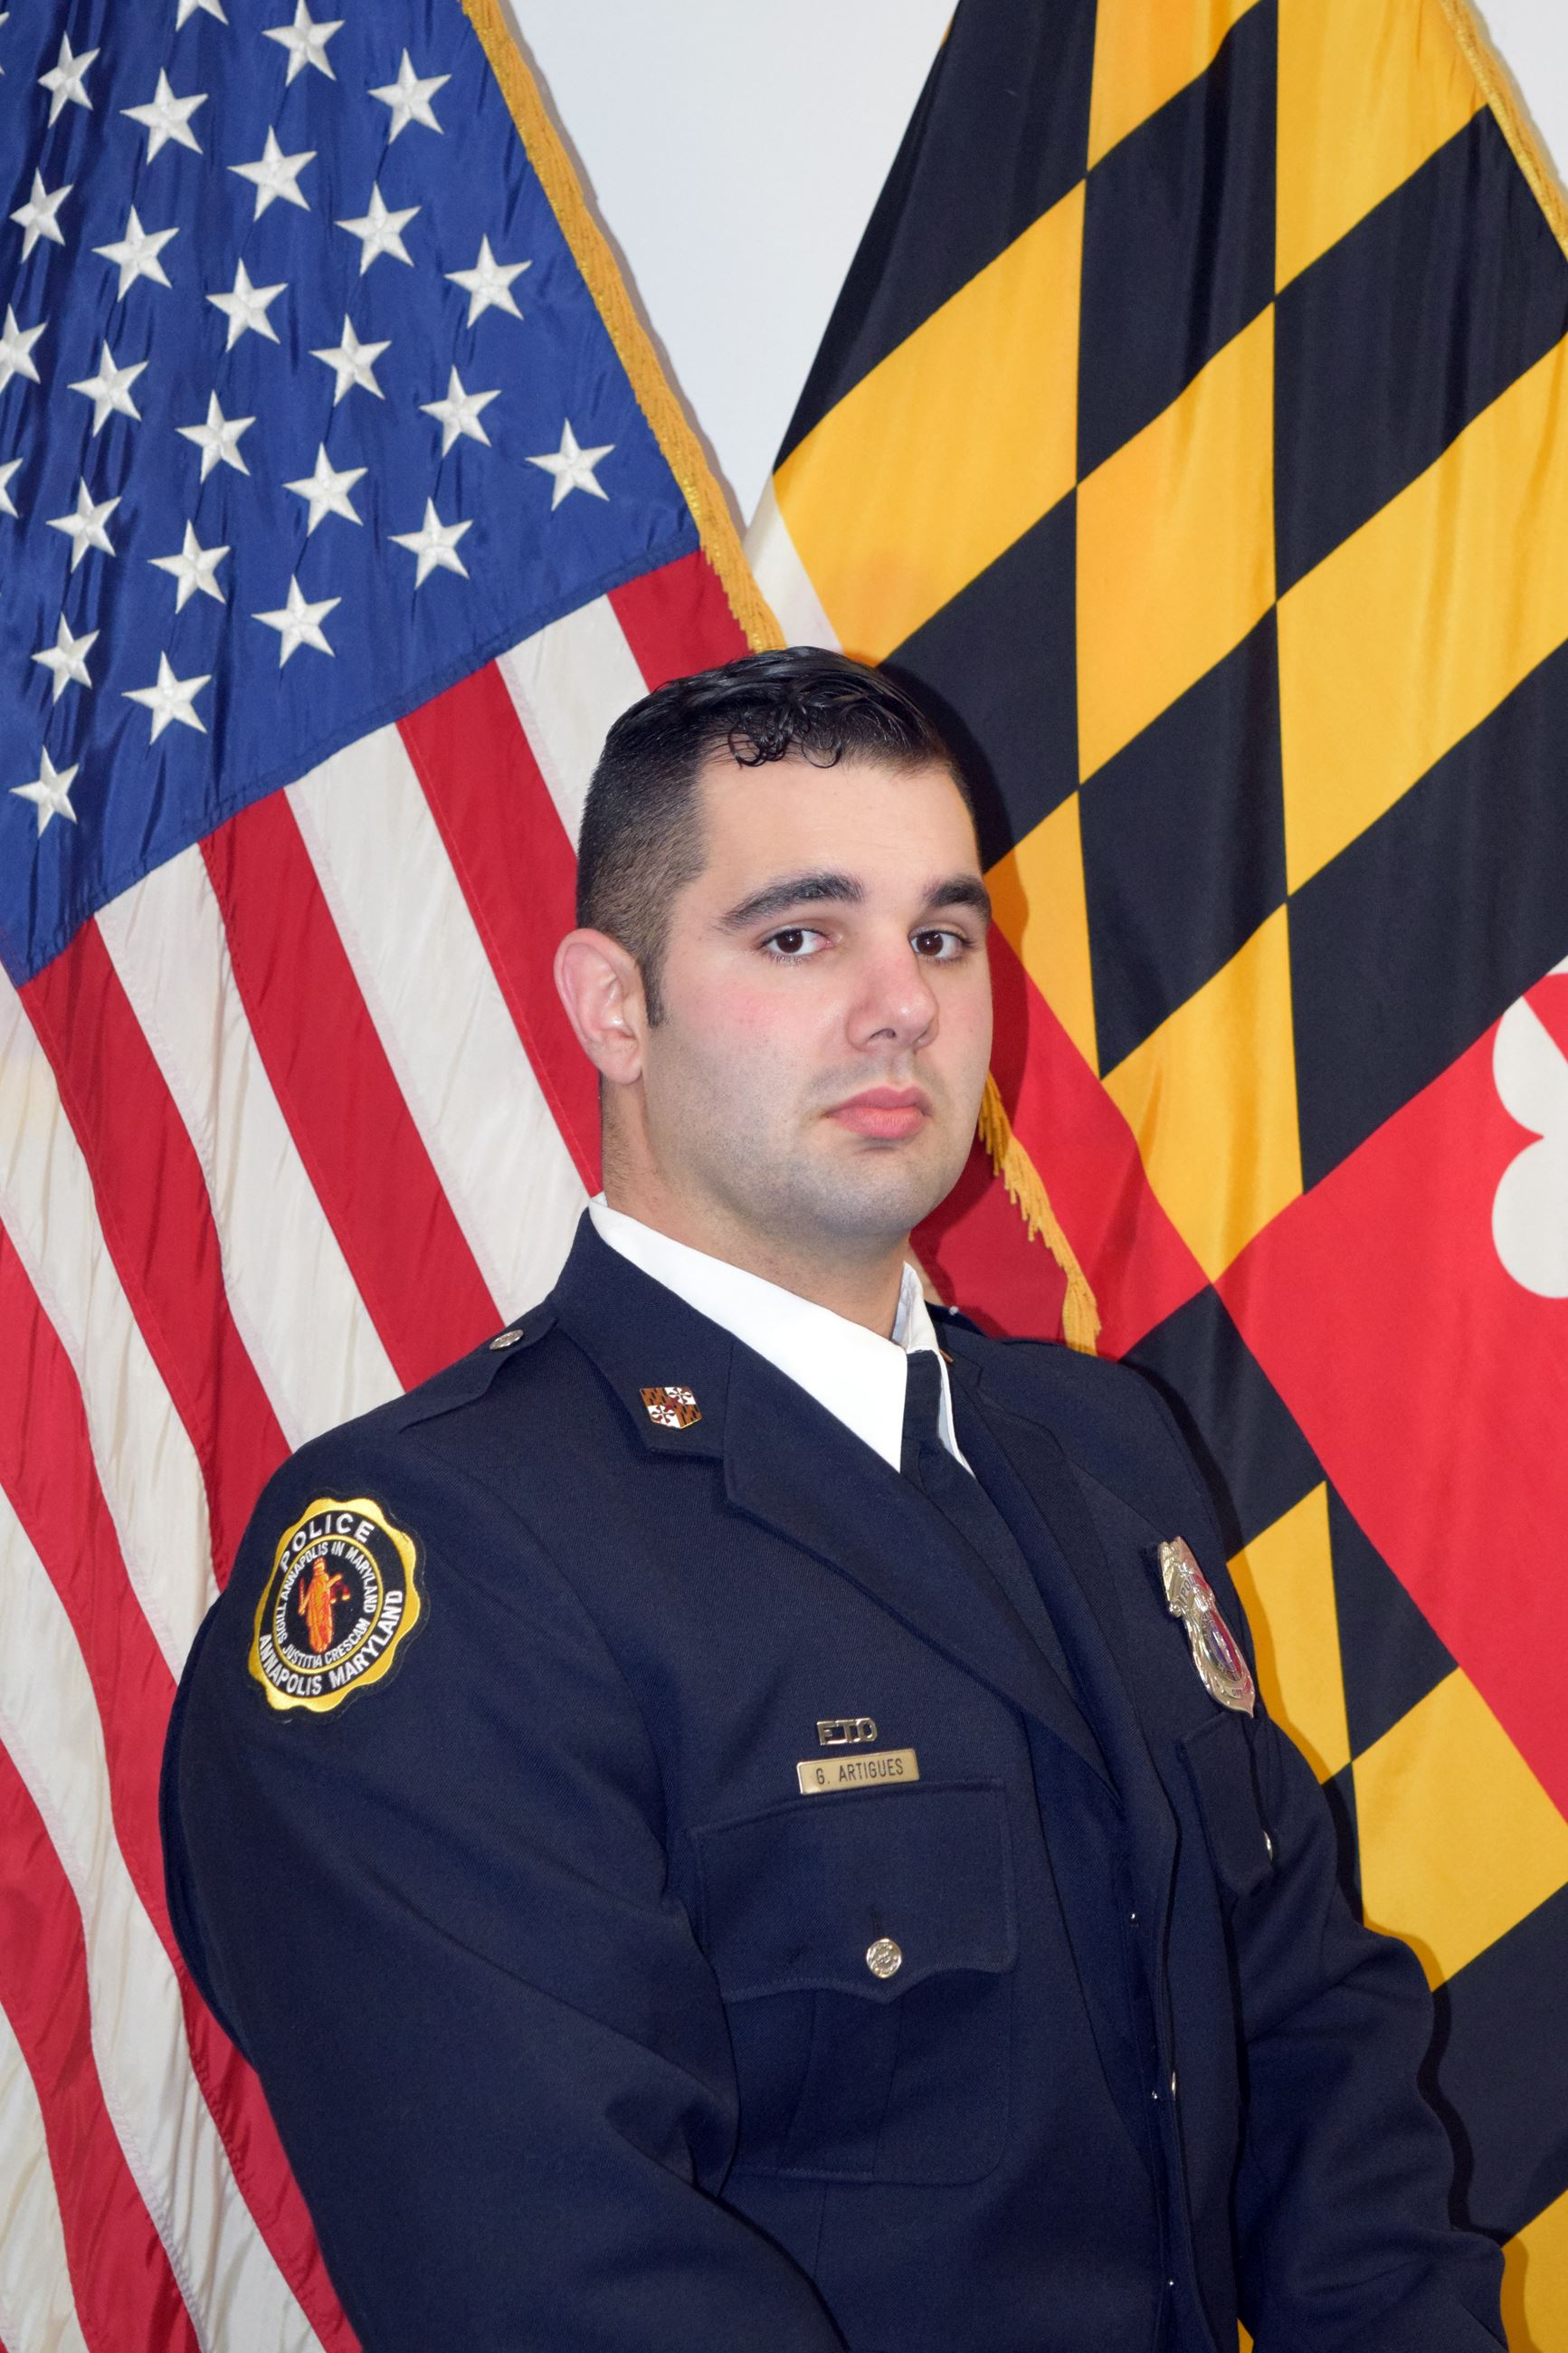 Officer Artigues in uniform in front of flags.